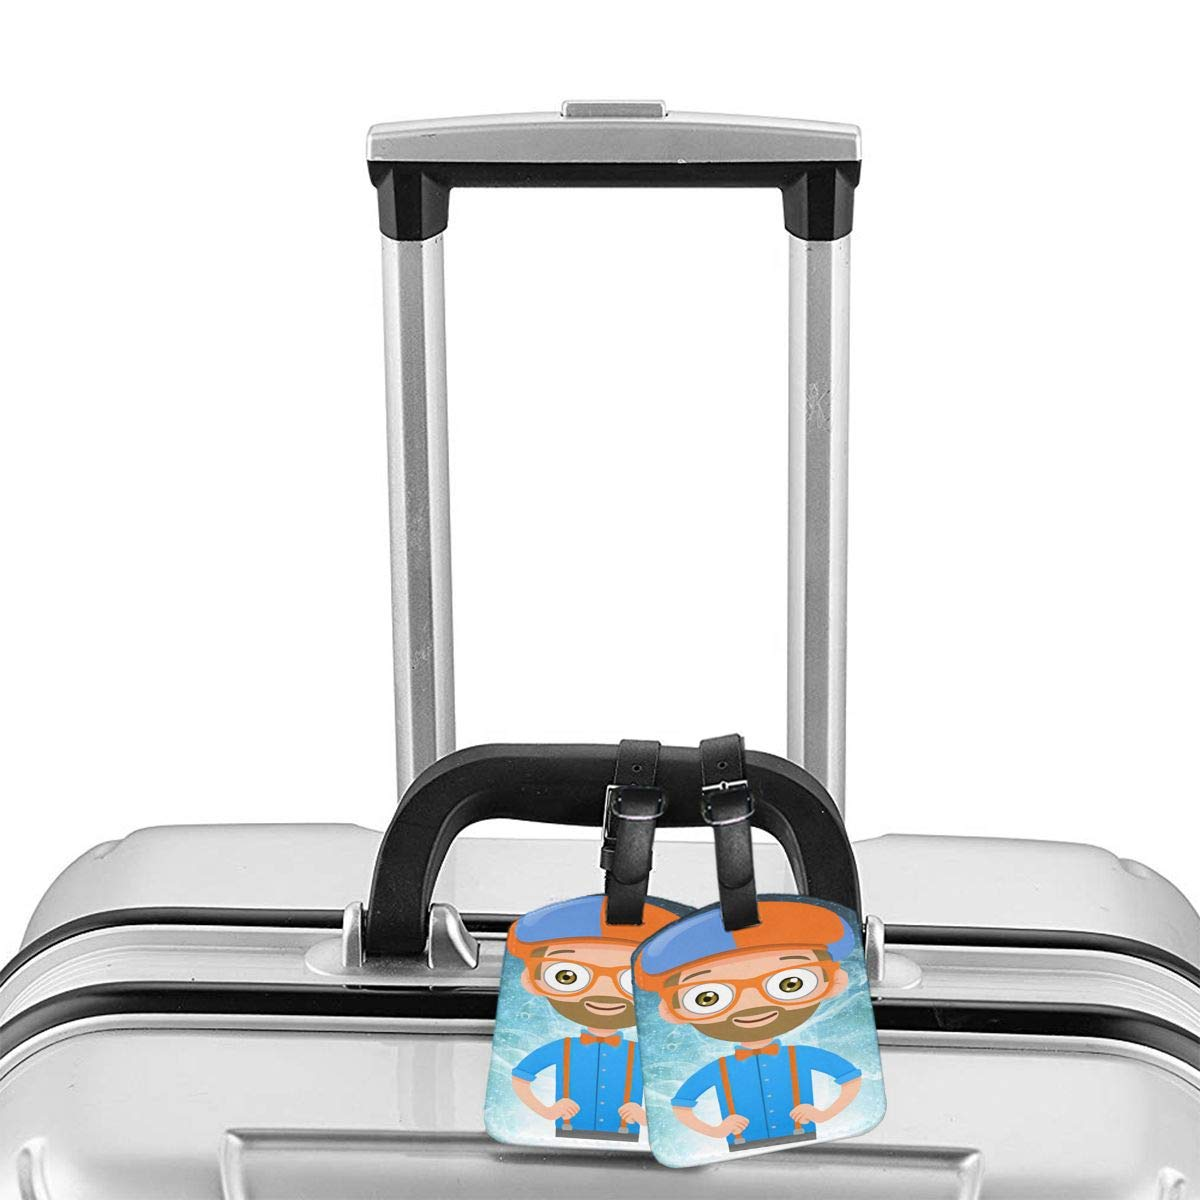 Liuchuan Blippi PU Leather Luggage Tags Suitcase Labels Bag Travel Accessories Set of 2